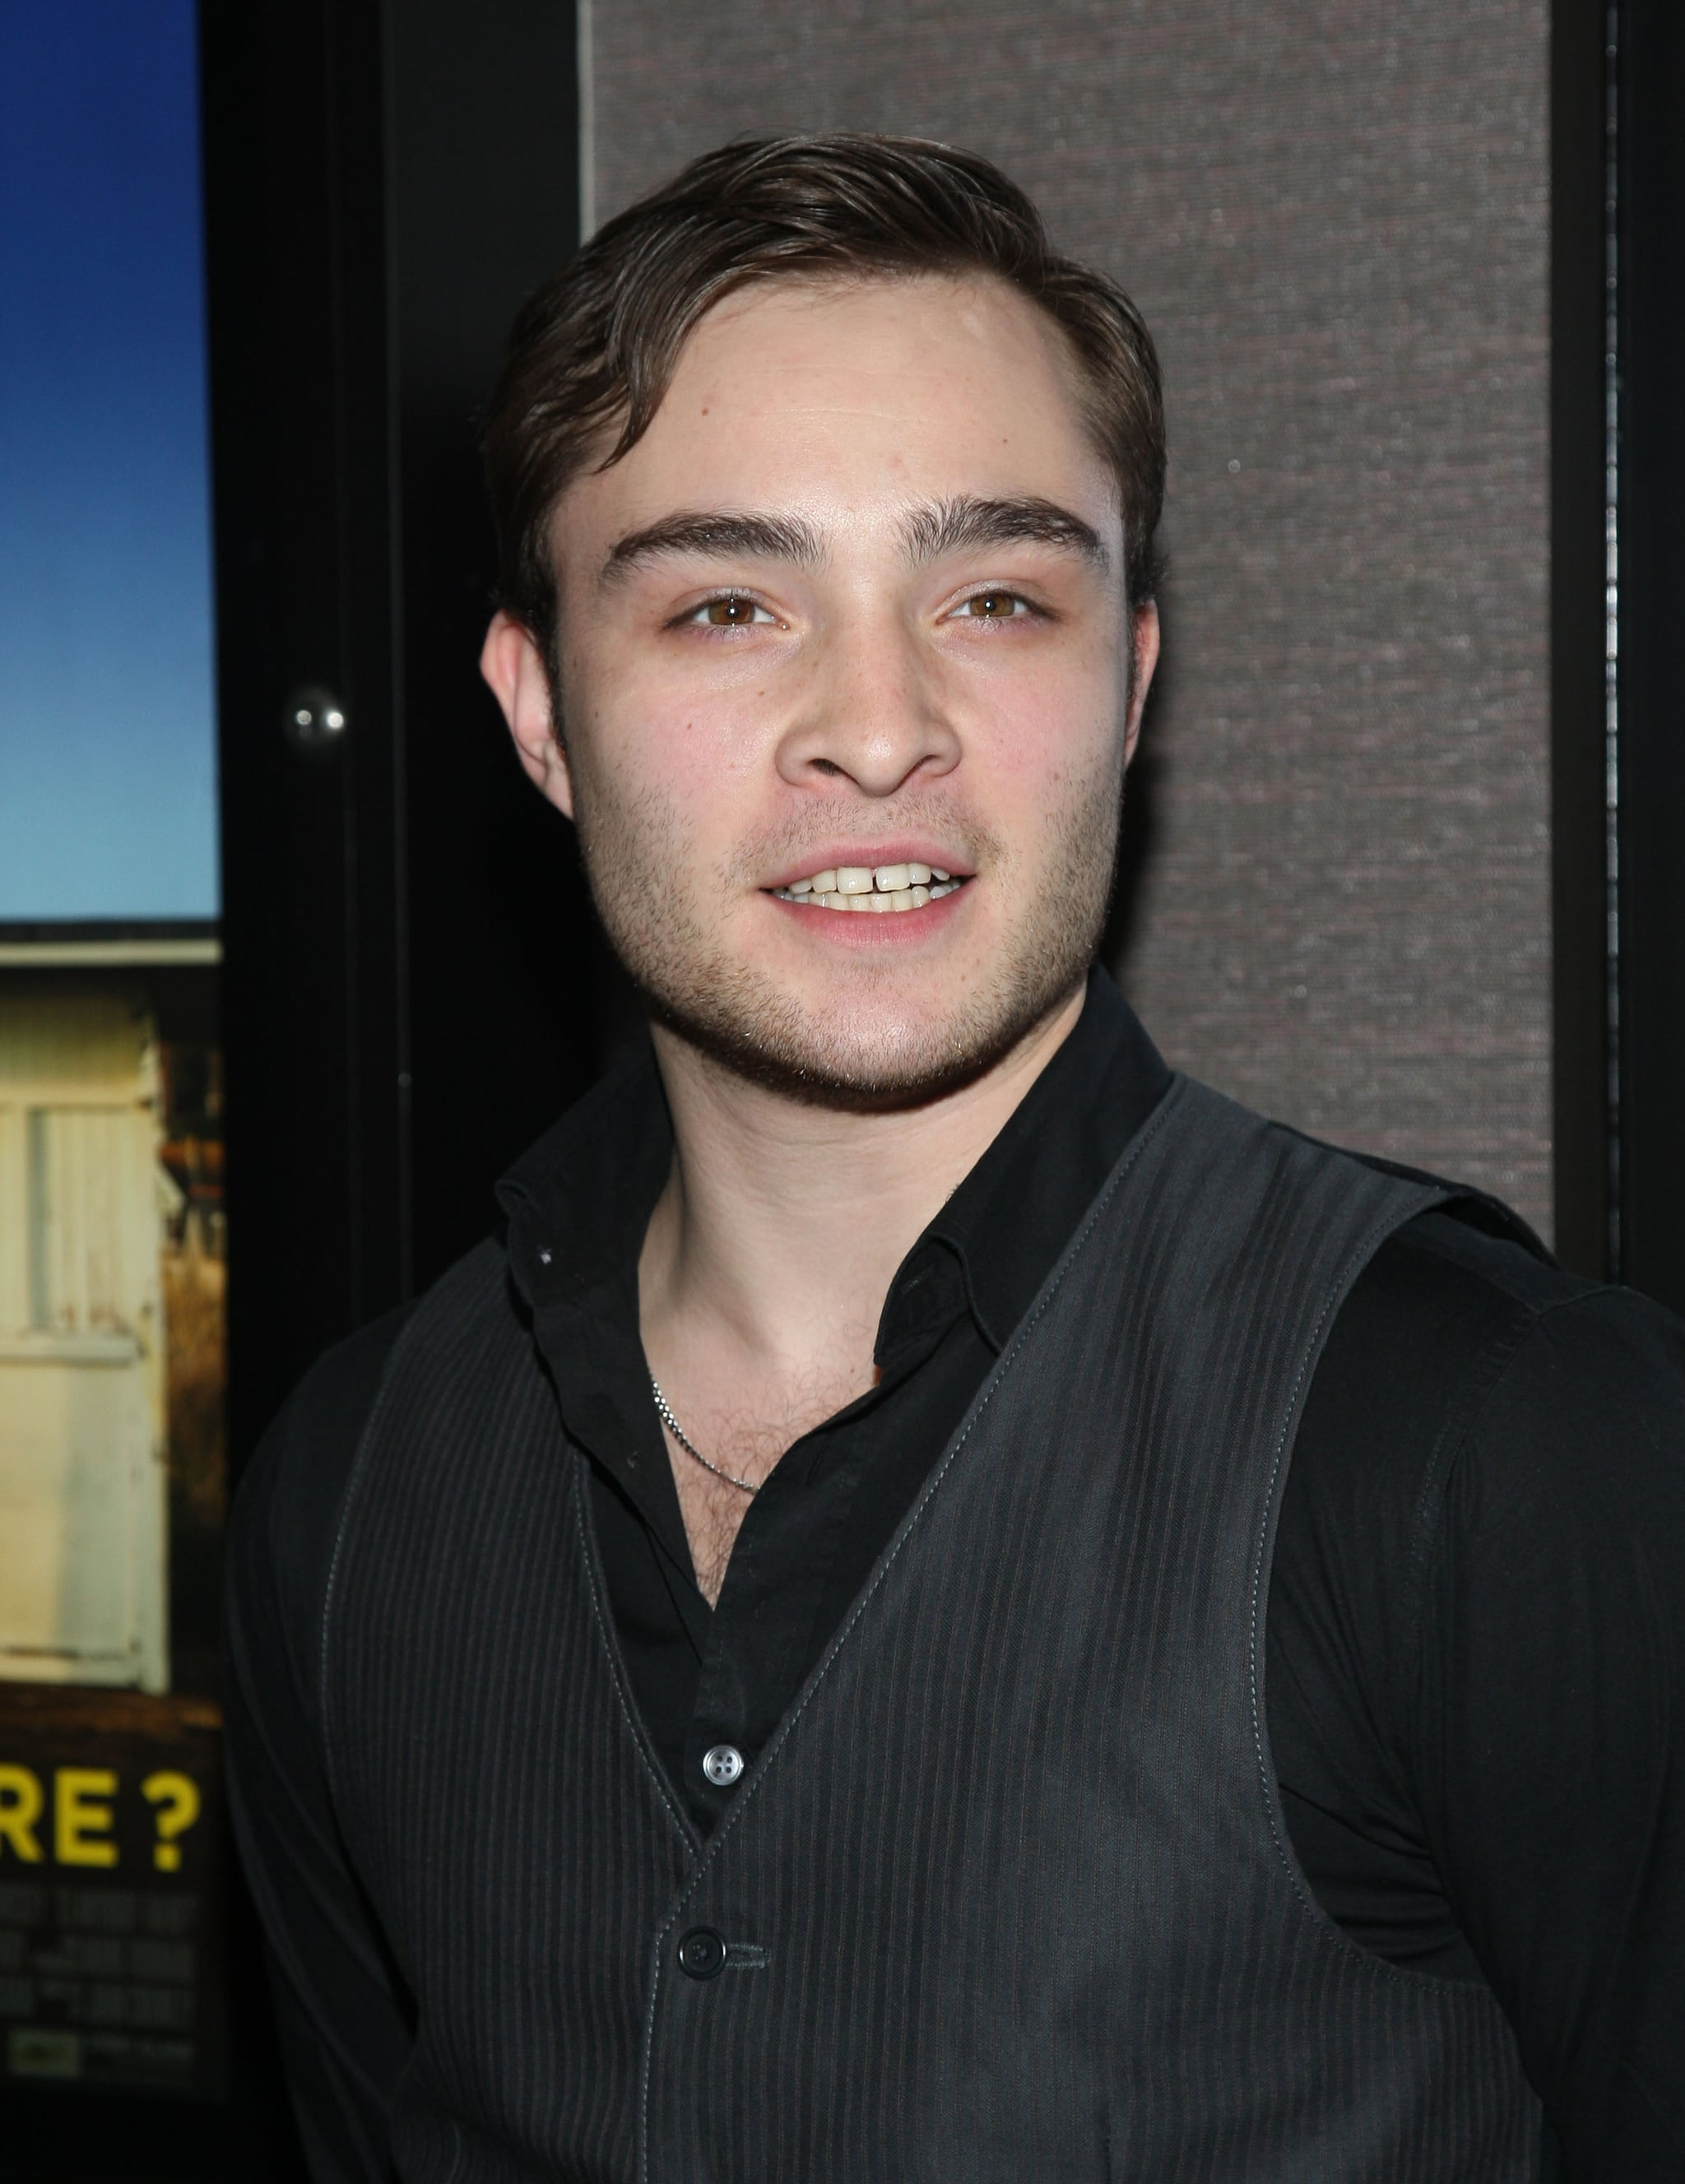 Photos of Ed Westwick ... Ed Westwick Now